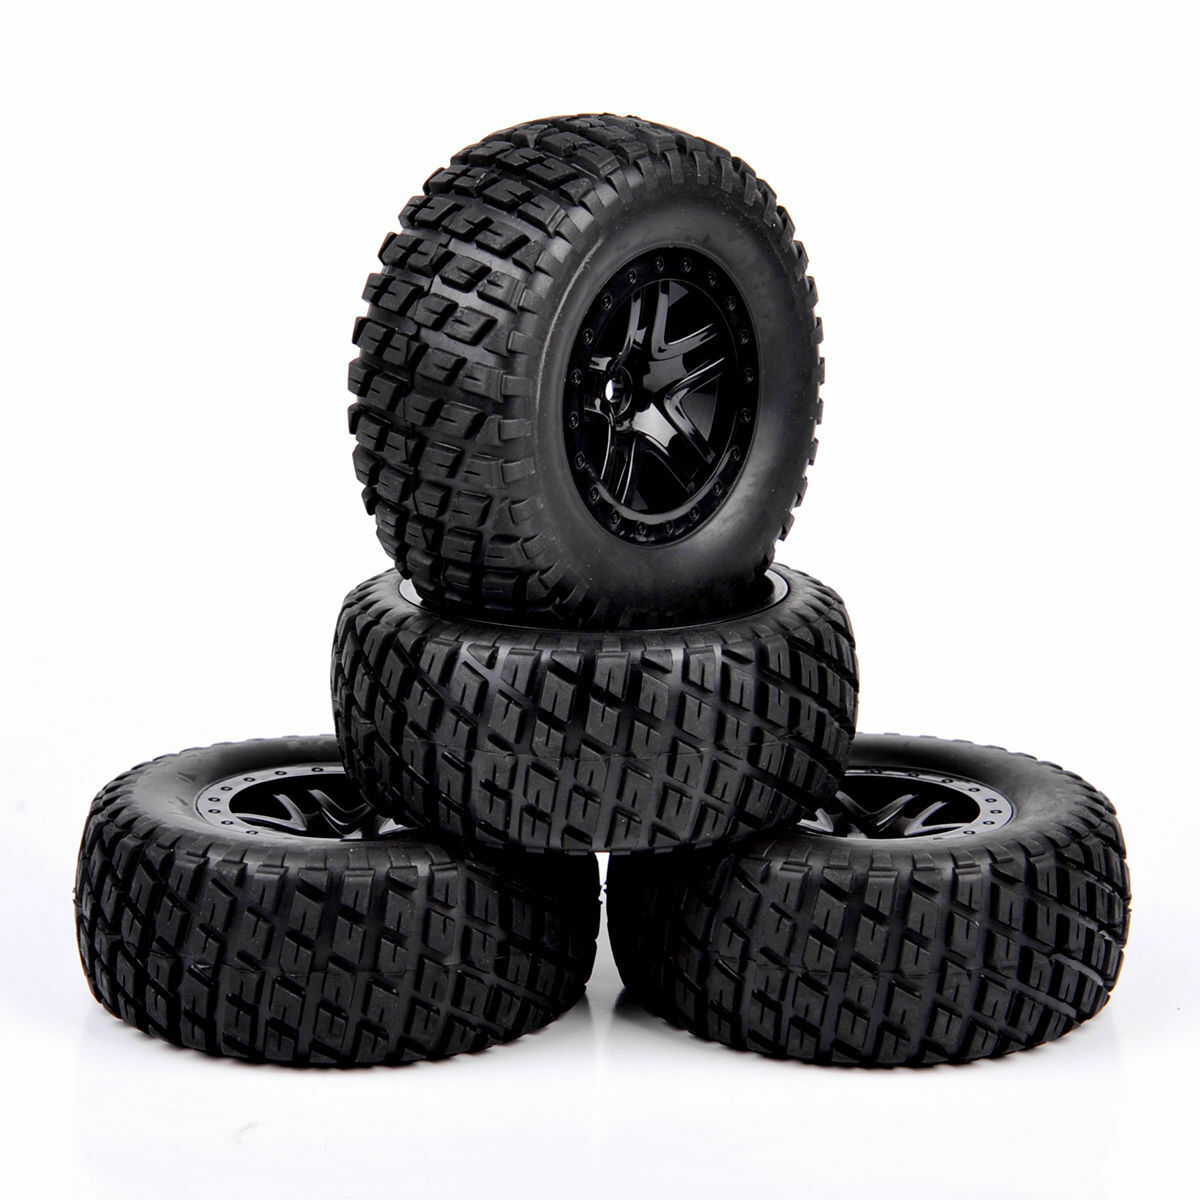 4Pcs 1:10 Short Course Truck Tires/&Wheel 17mm Hex for TRAXXAS SLASH RC Car Tyres